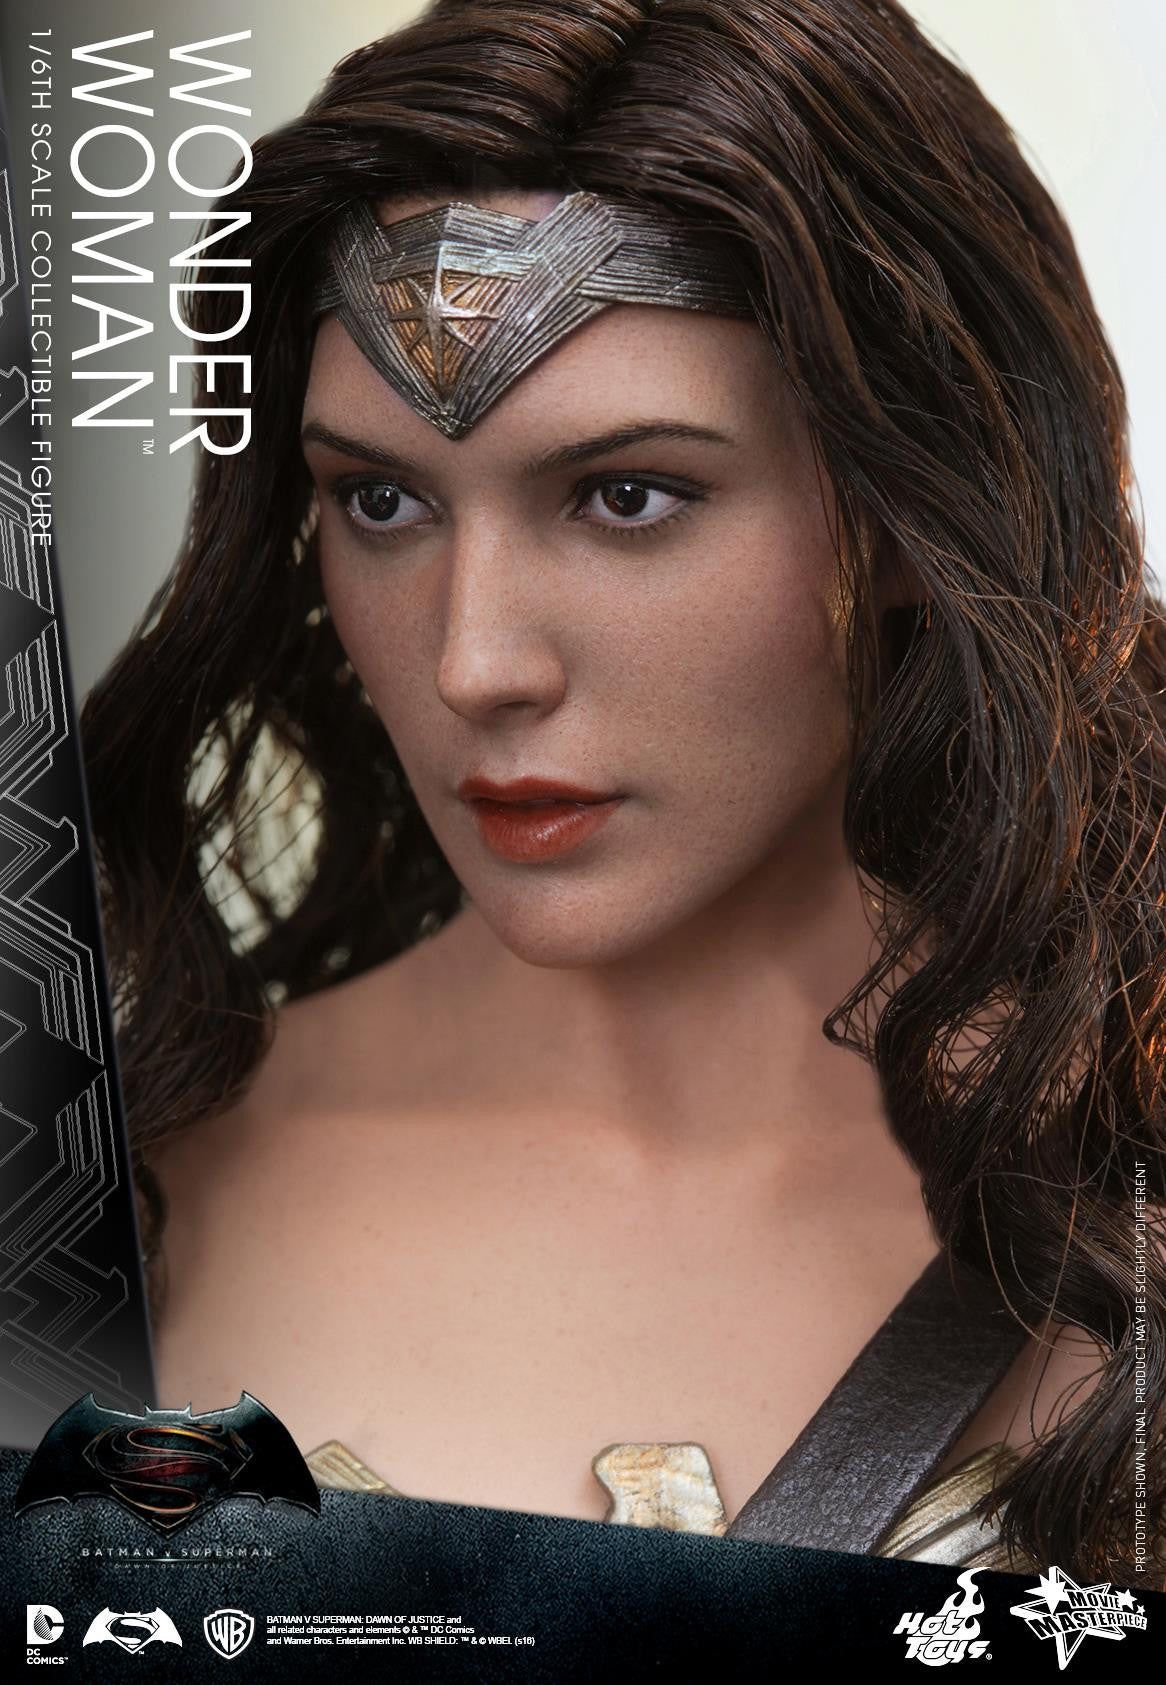 Hot Toys - Batman v Superman: Dawn of Justice - Wonder Woman MMS359 - Marvelous Toys - 10